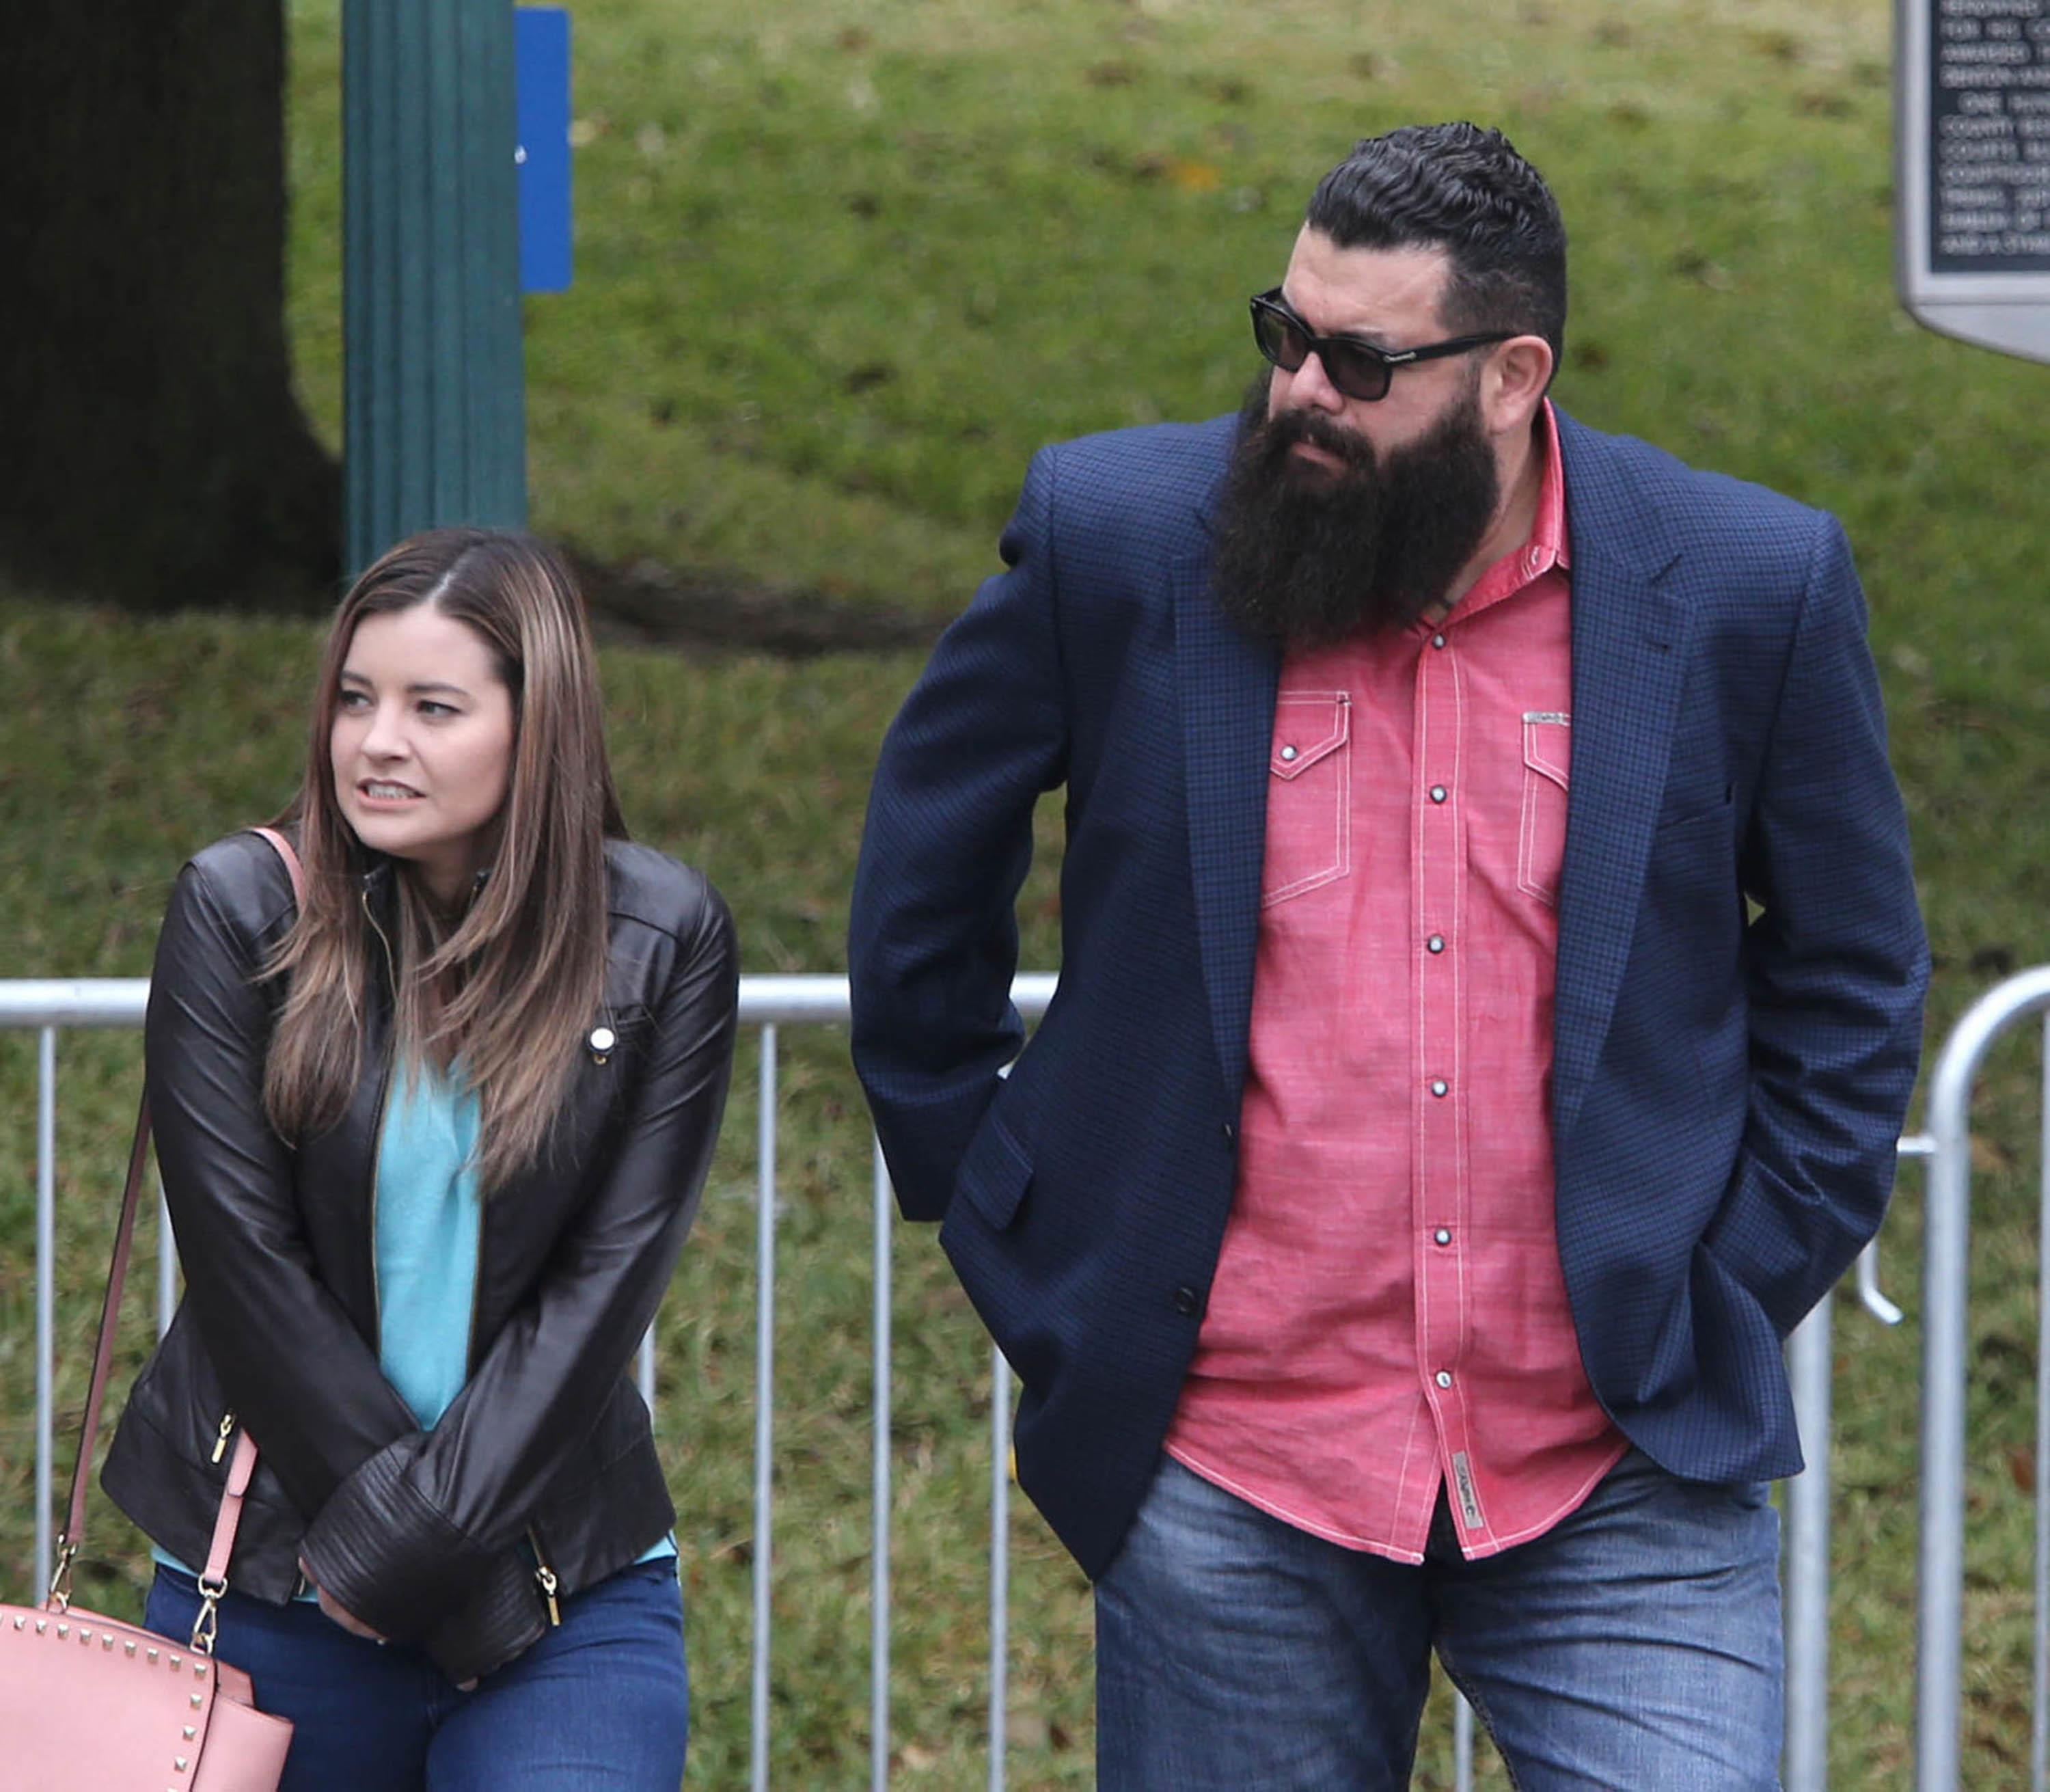 "Christopher ""Jake"" Carrizal, right, arrives at the McLennan County courthouse with an unidentified women, Thursday, Nov. 9, 2017, in Waco, Texas. A jury started deliberating around noon after both sides of the case presented closing arguments. The Dallas chapter president of the Bandidos motorcycle club is the first to stand trial involving the 2015 shootout where nine people were fatally shot and 18 people were injured outside of Twin Peaks restaurant. (Jerry Larson/Waco Tribune Herald, via AP)"